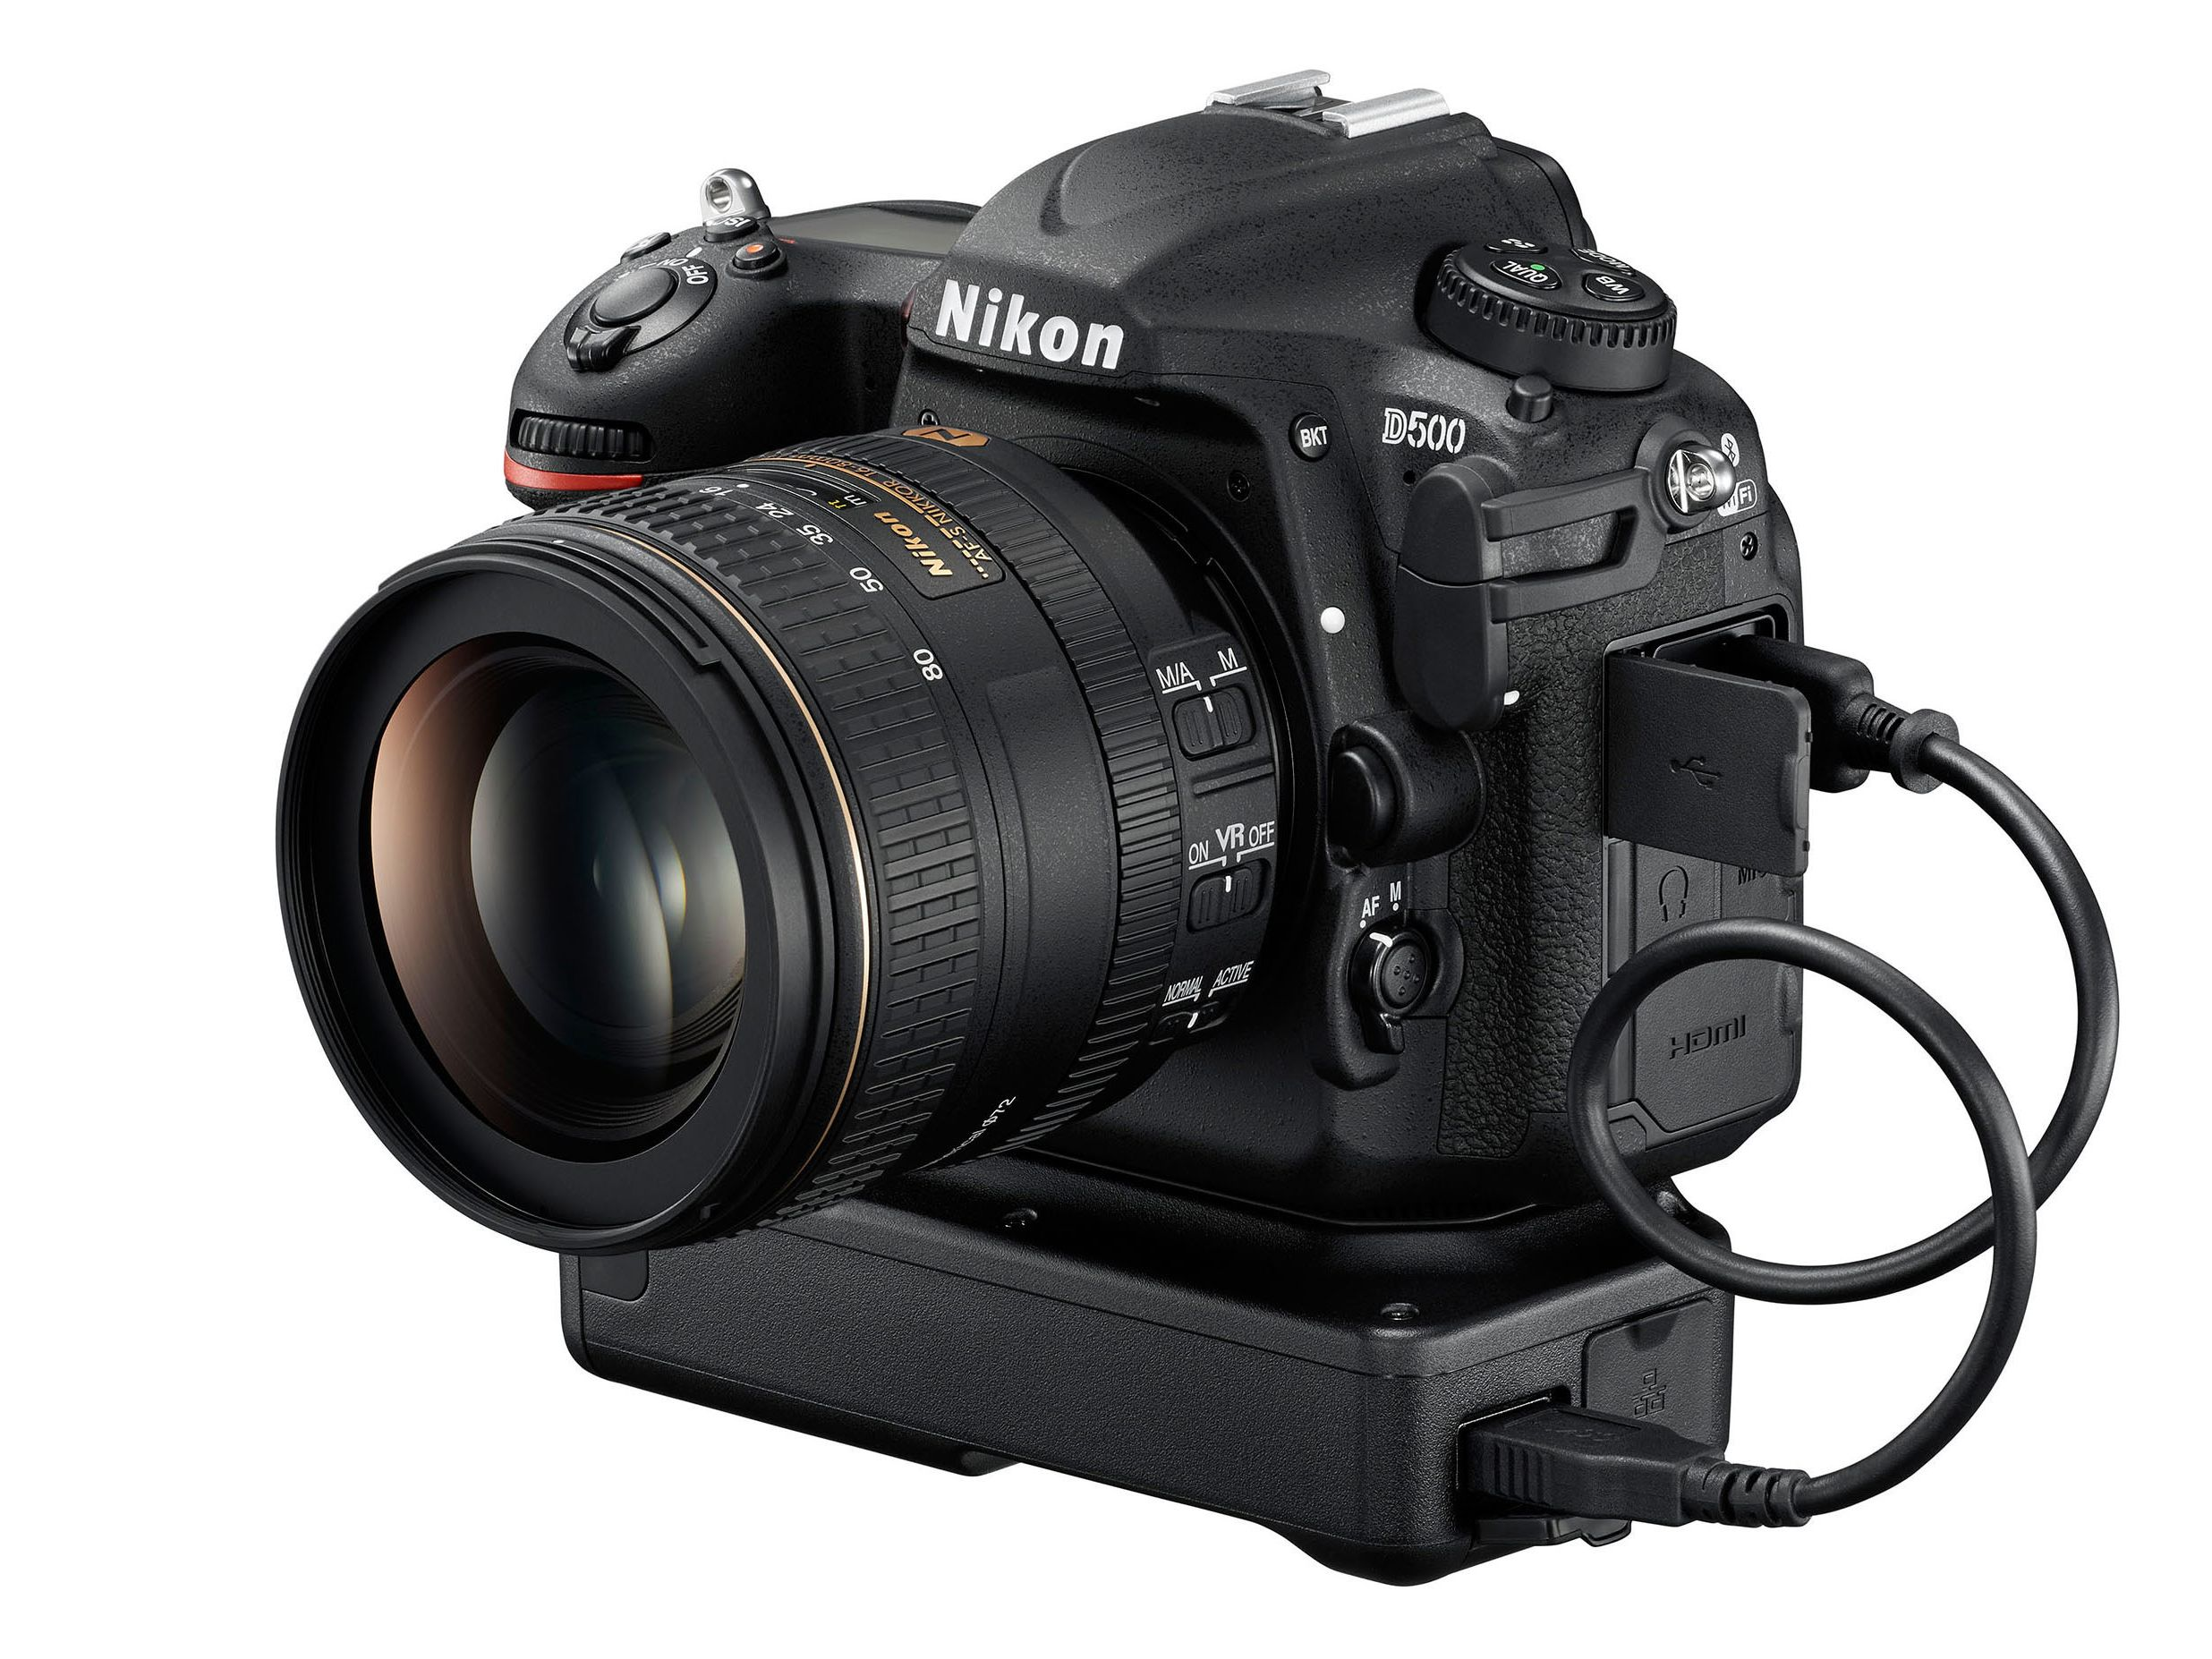 Nikon has issued new firmware for its D810, D810A, D750